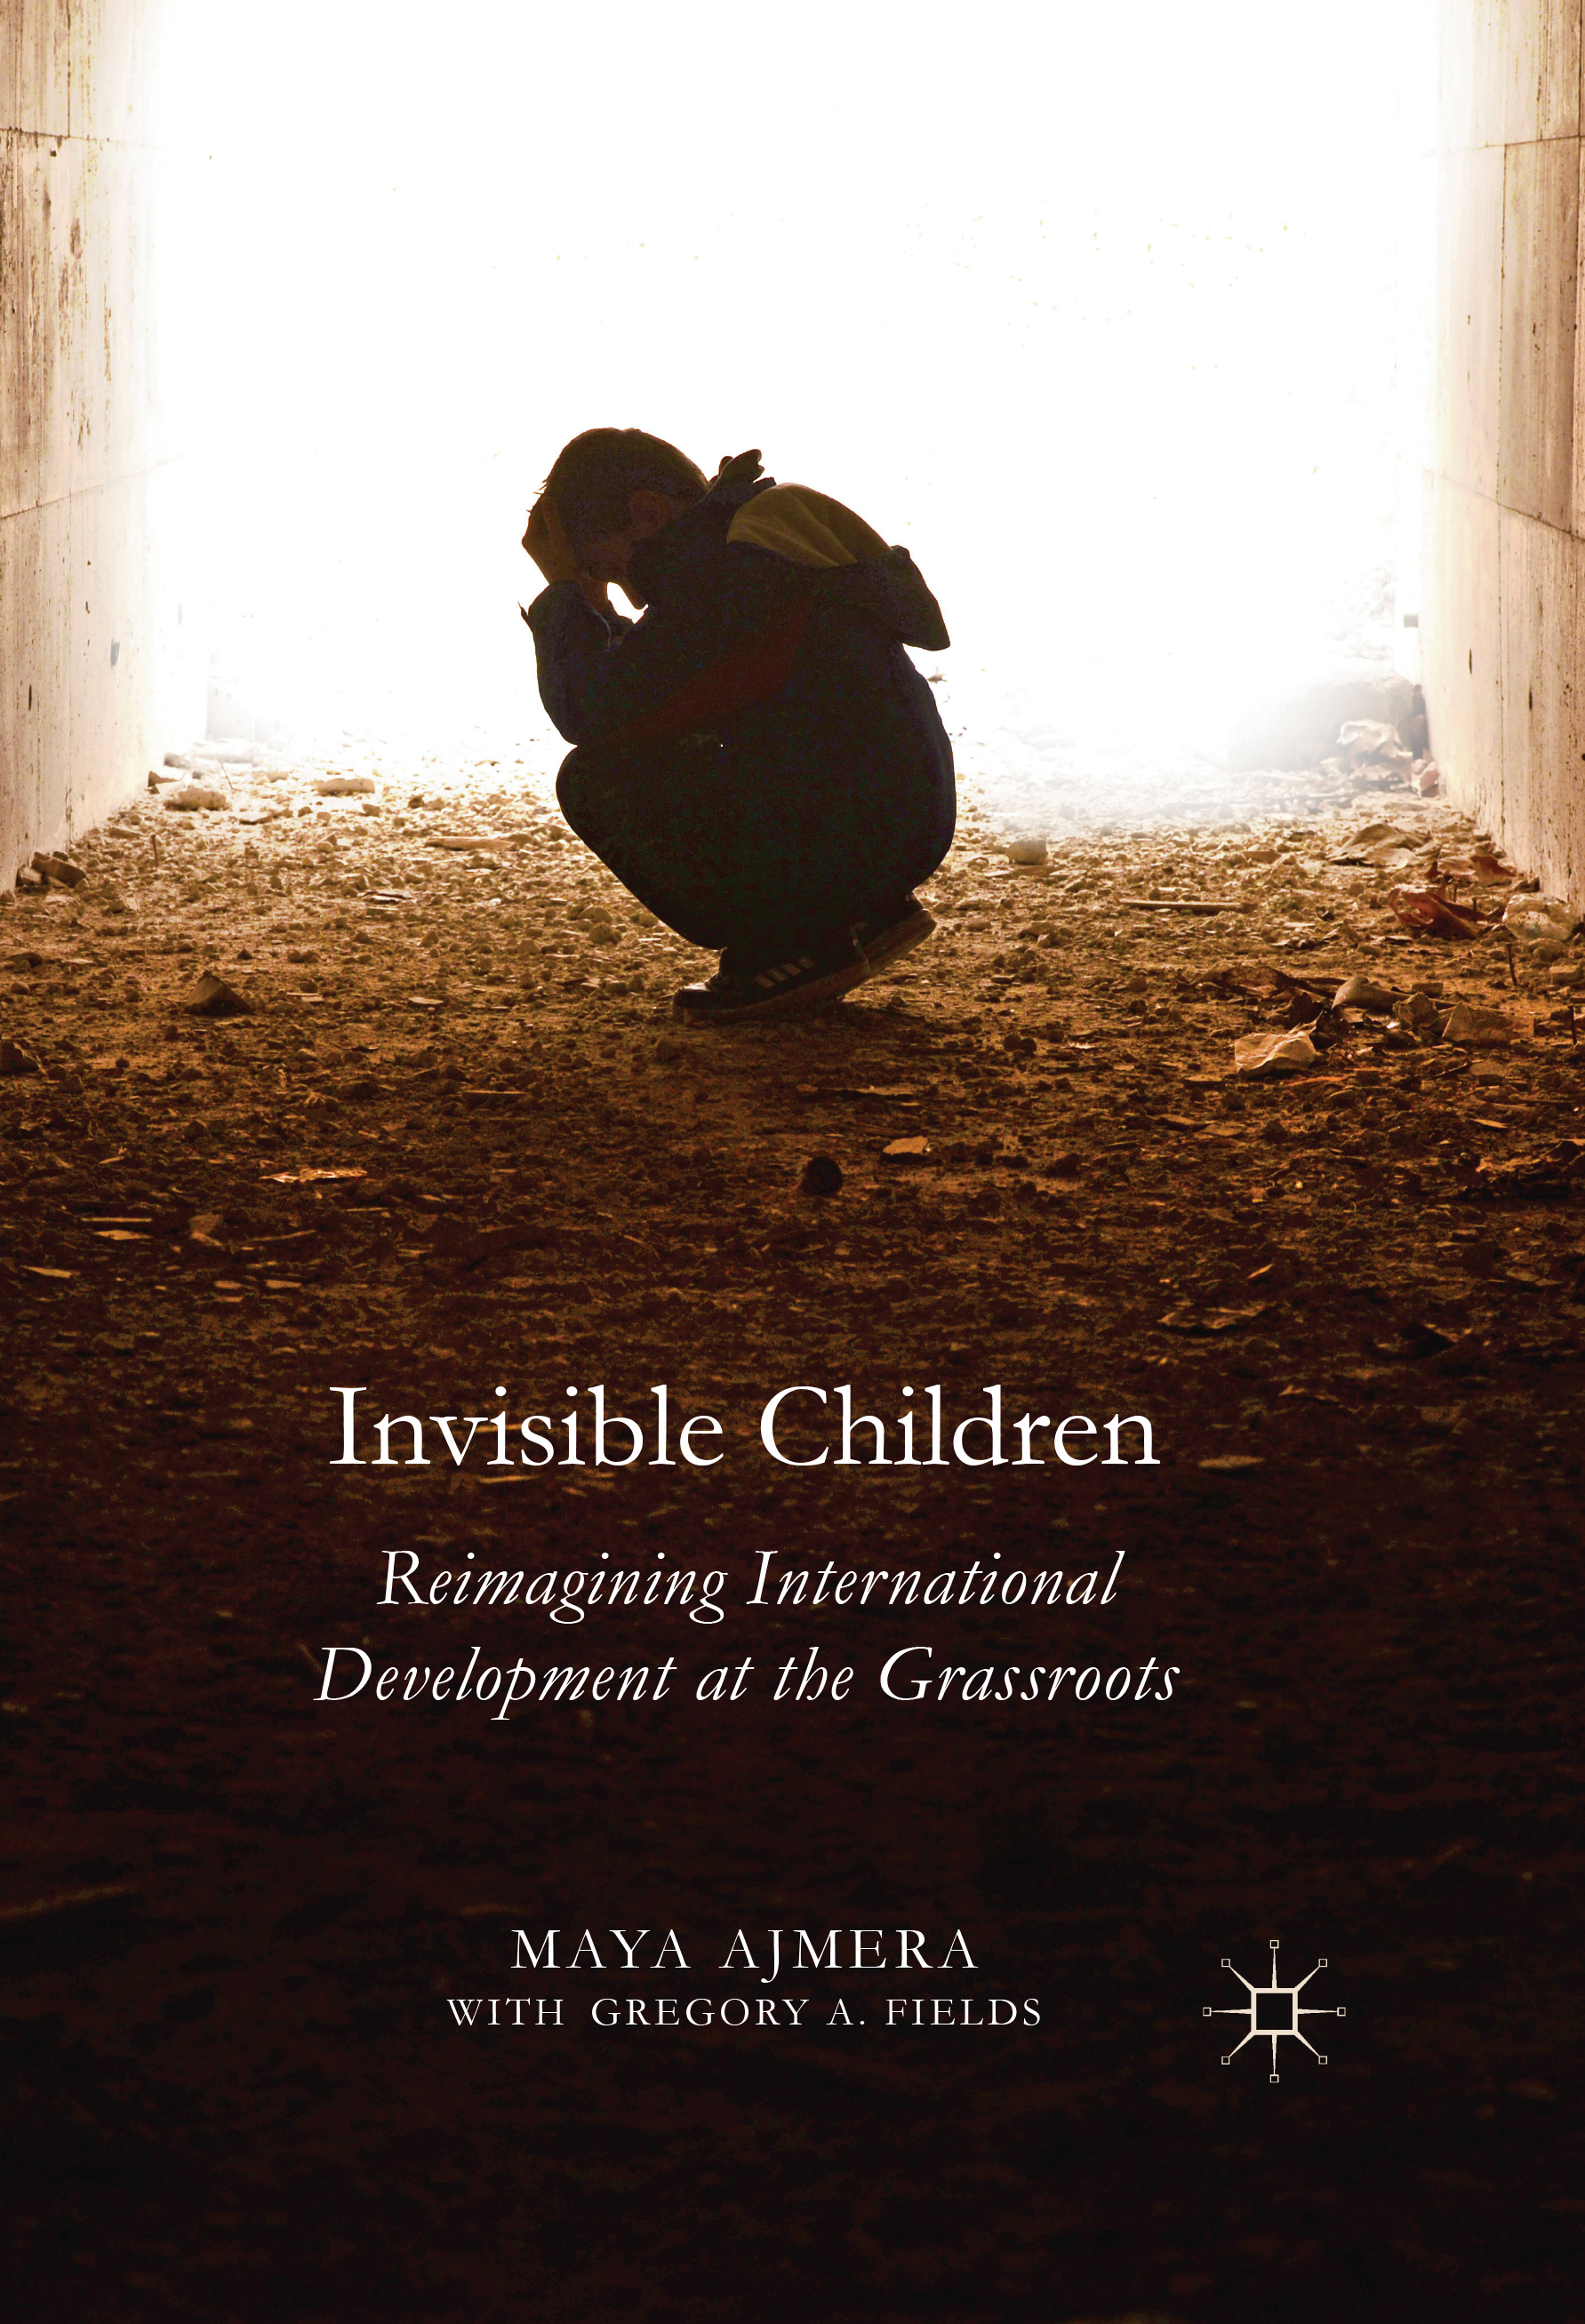 Invisible Children: Reimagining International Development at the Grassroots